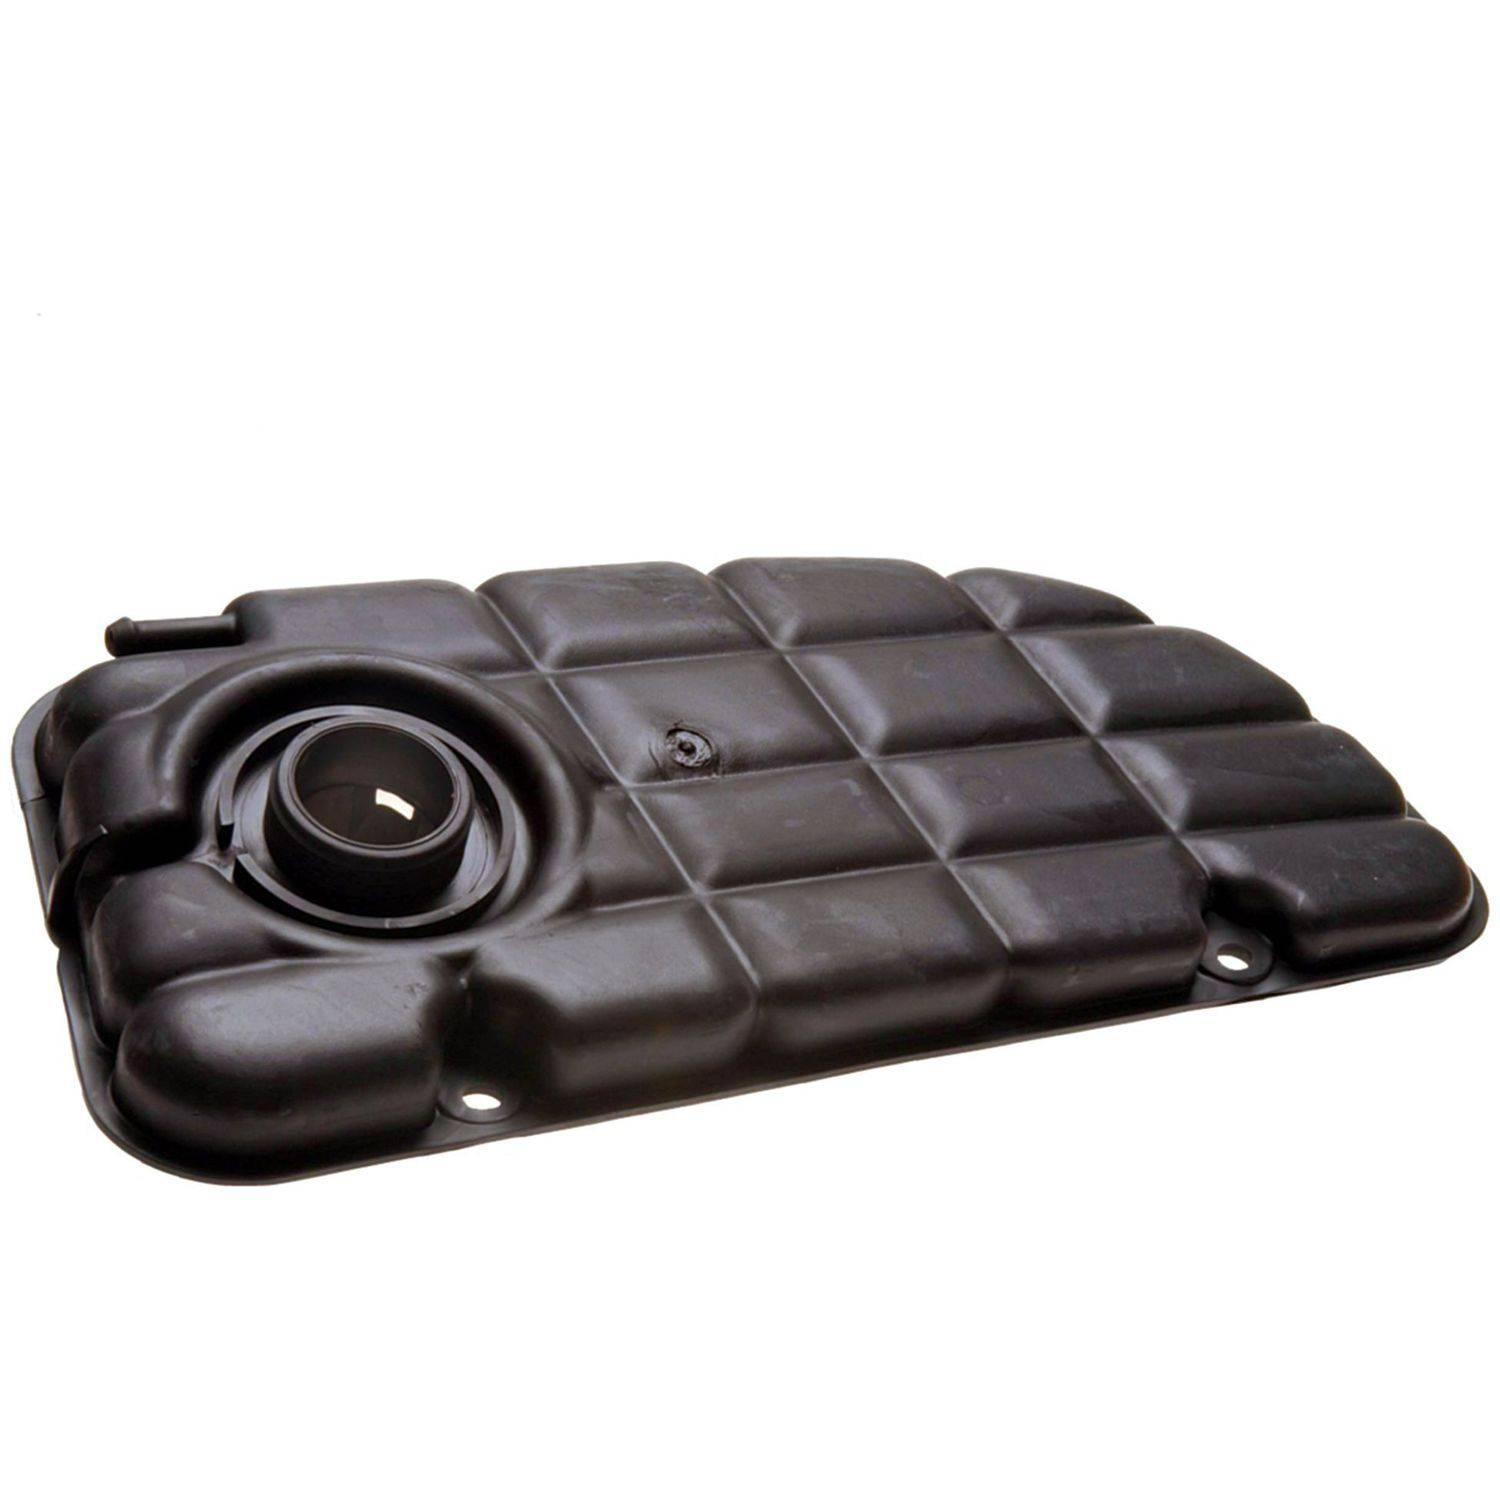 ACDelco 10430189 Radiator Surge Tank by ACDelco